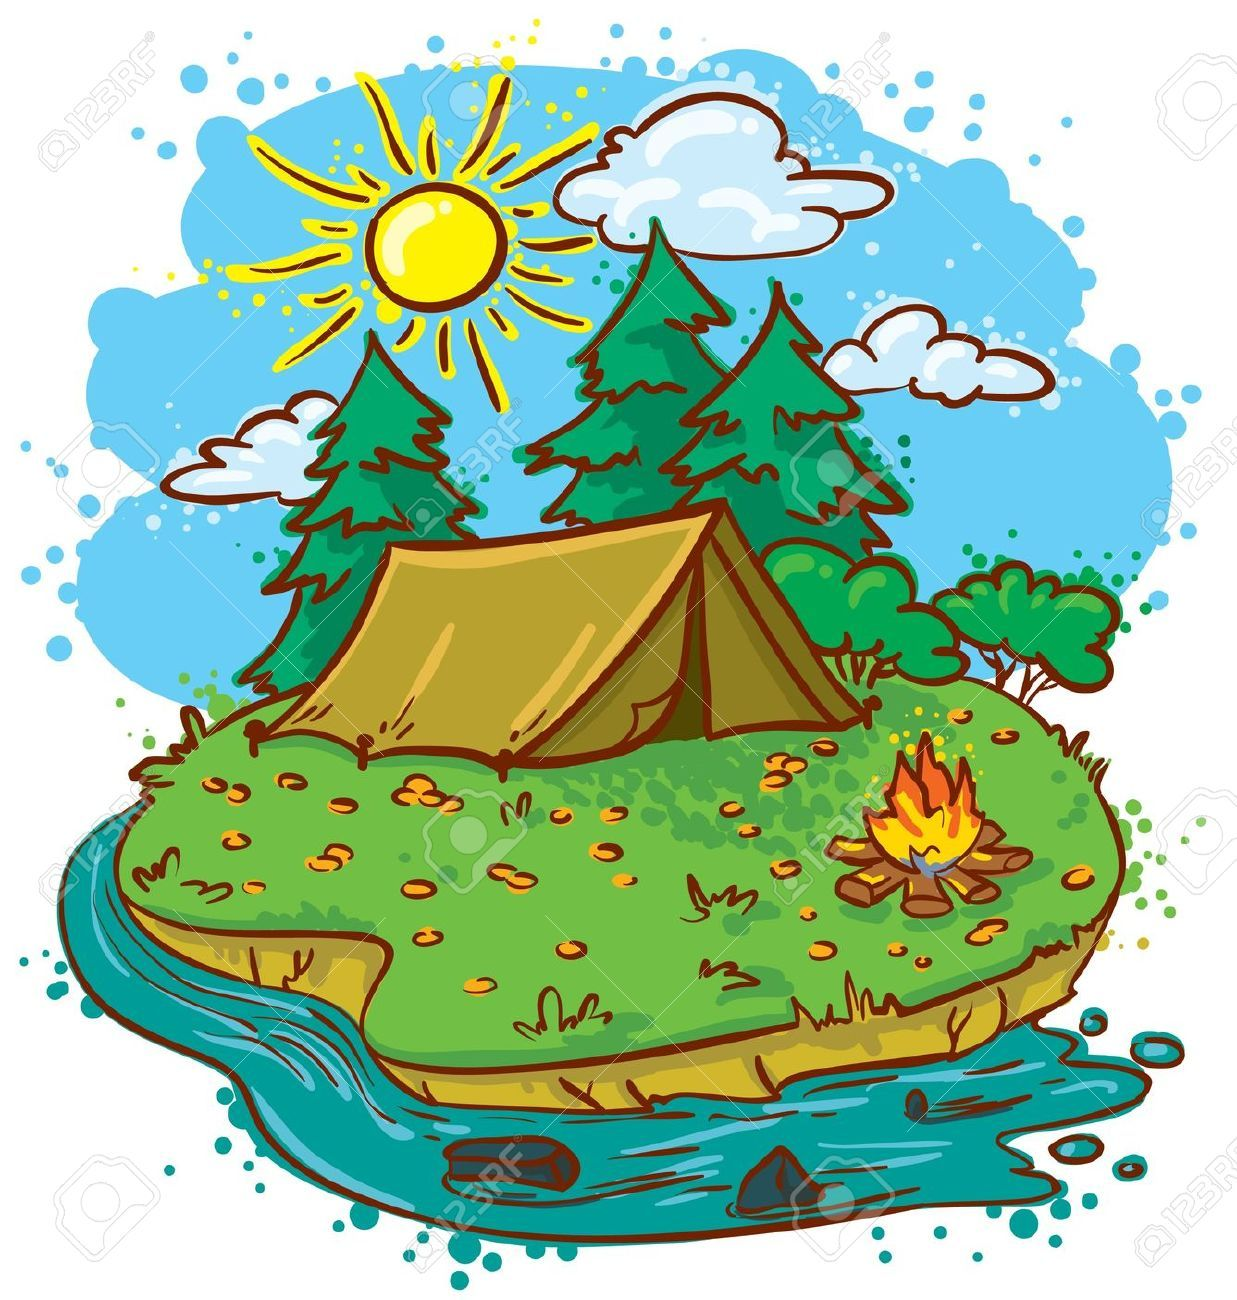 Campsite clipart picture free stock Images For > Camp Clipart | camping | Camping clipart, Free summer ... picture free stock